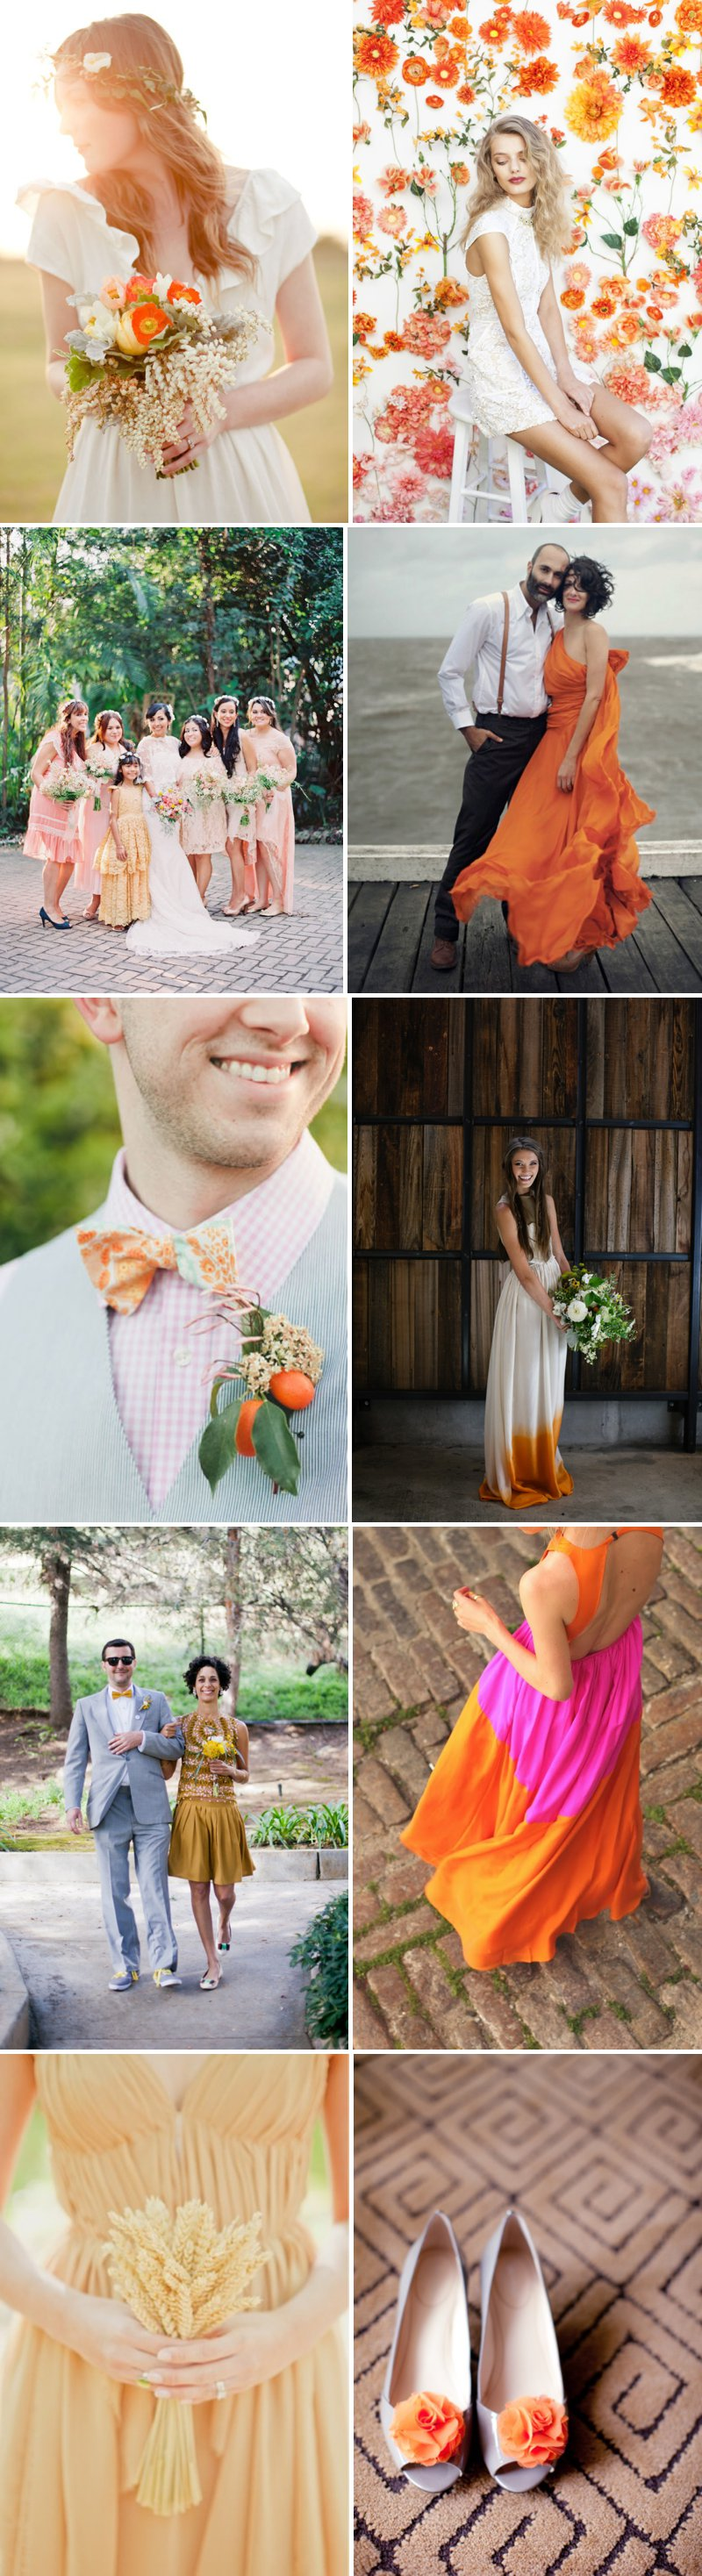 Grapefruit Girls Orange Wedding Outfit Dress